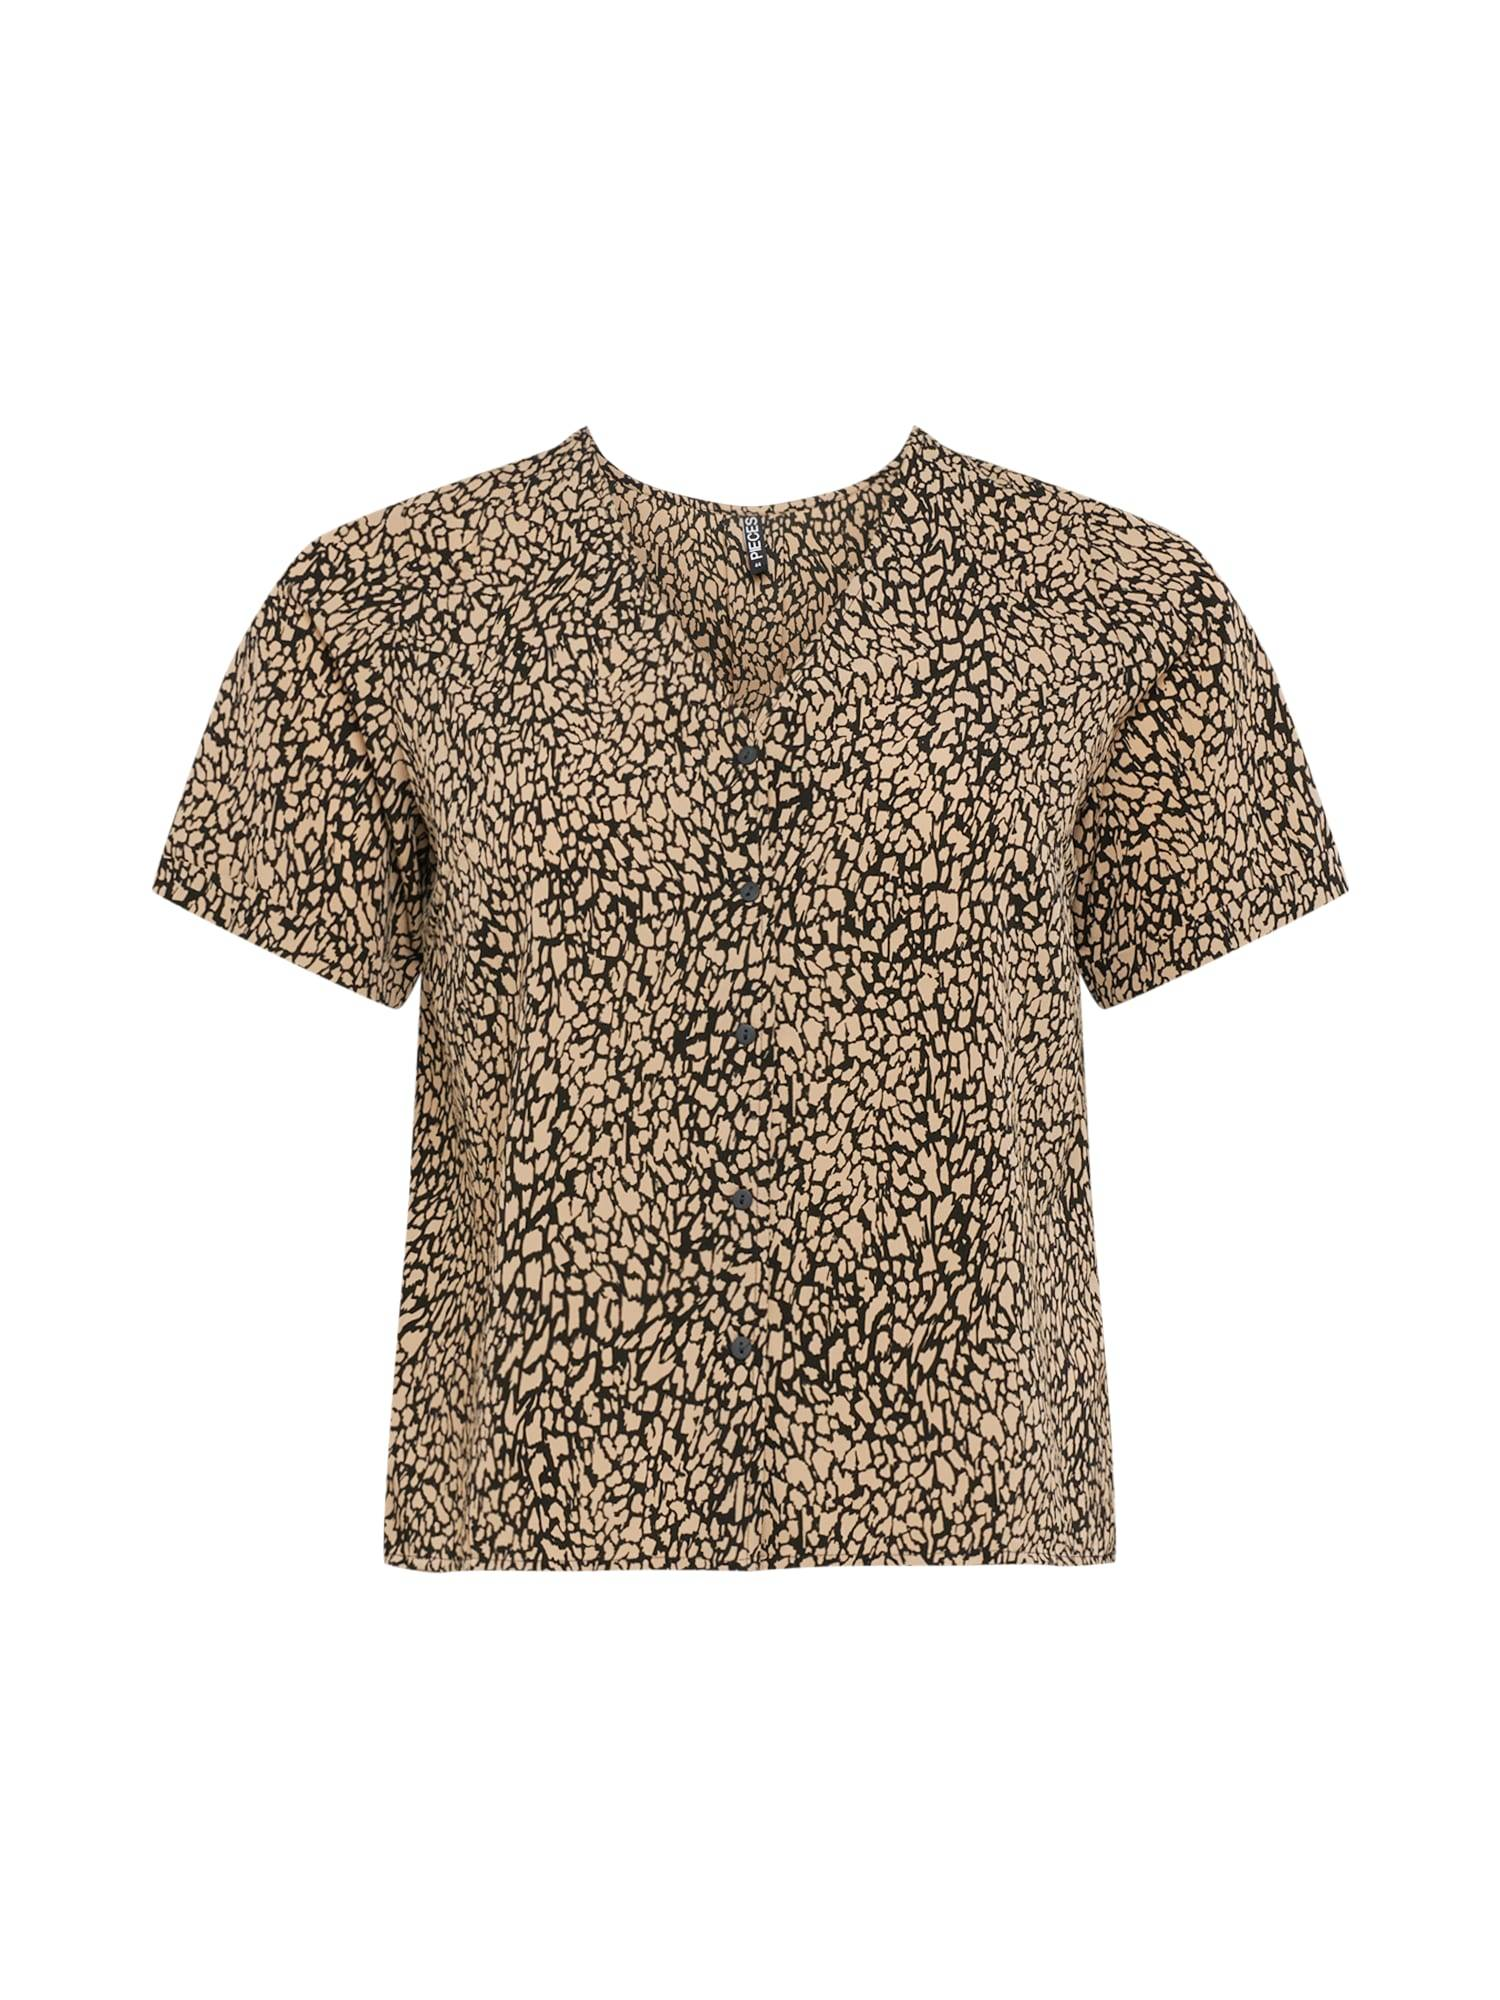 PIECES (Curve) T-shirt 'GILBERTA'  - Noir - Taille: 52 - female